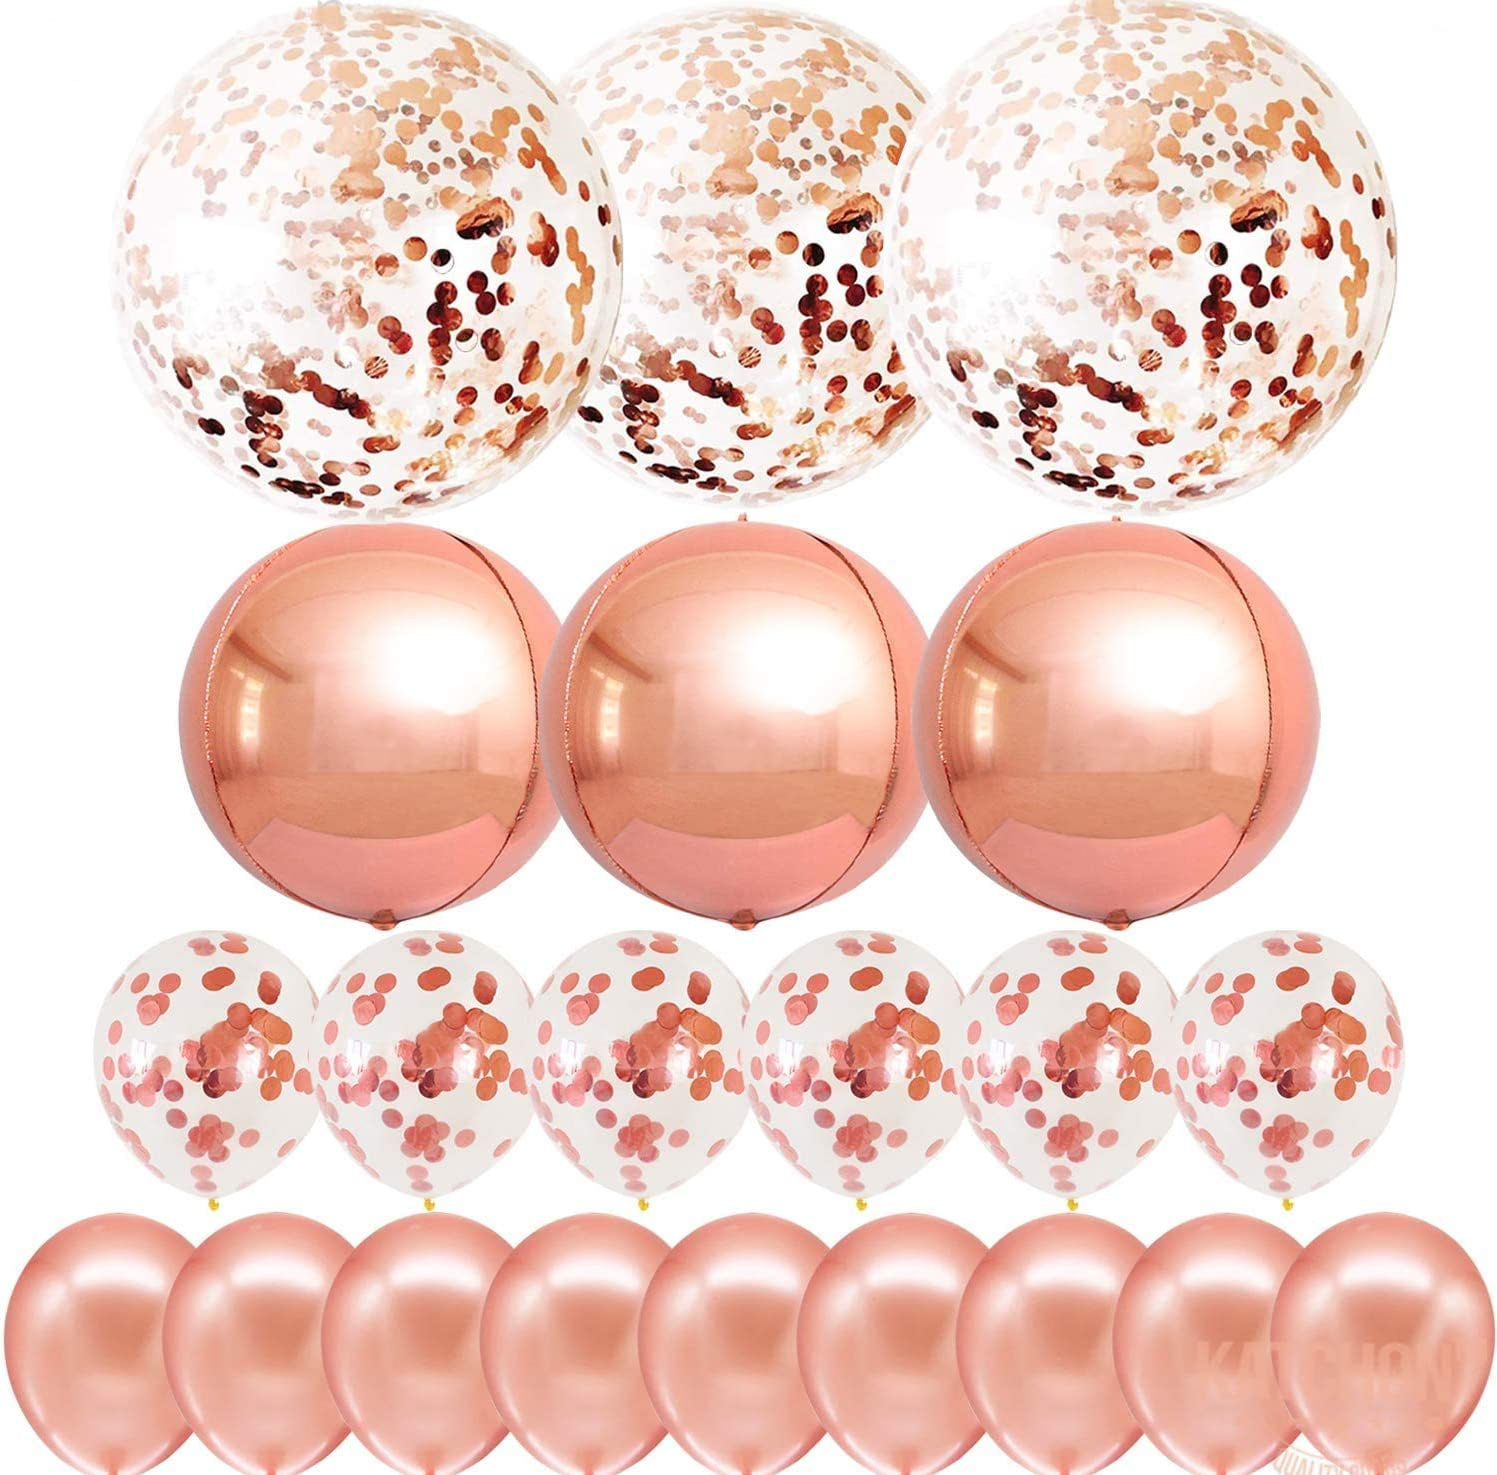 Big Confetti and Orbz Rose Gold Balloons - Jumbo 36 Inch and 12 Inch, Rose Gold Confetii Balloons | 22 Inchs Rose Gold Orbz Balloons | Giant Rose Gold Balloons Set For Arch Kit and Balloon Garland